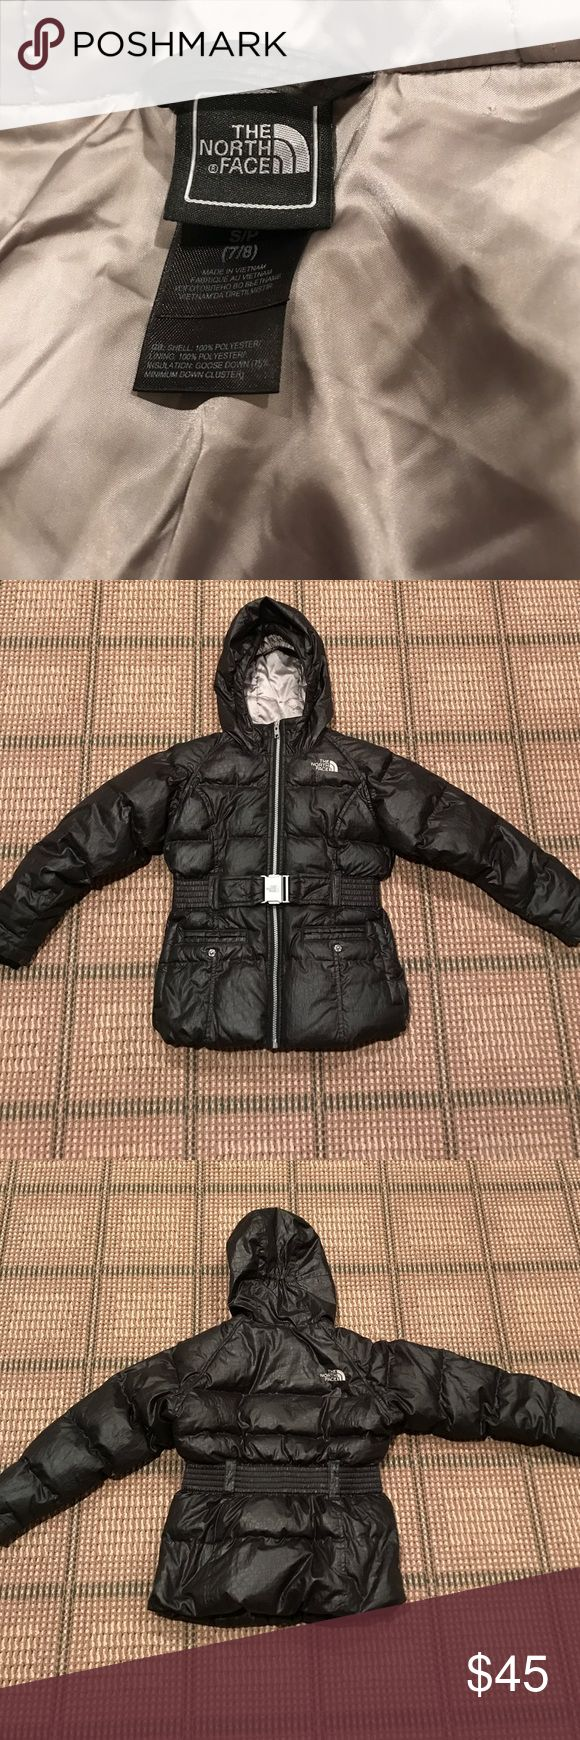 Girls 7/8 north face black black winter coat Girls 7/8 north face black black winter coat. Gently worn. North Face Jackets & Coats Puffers